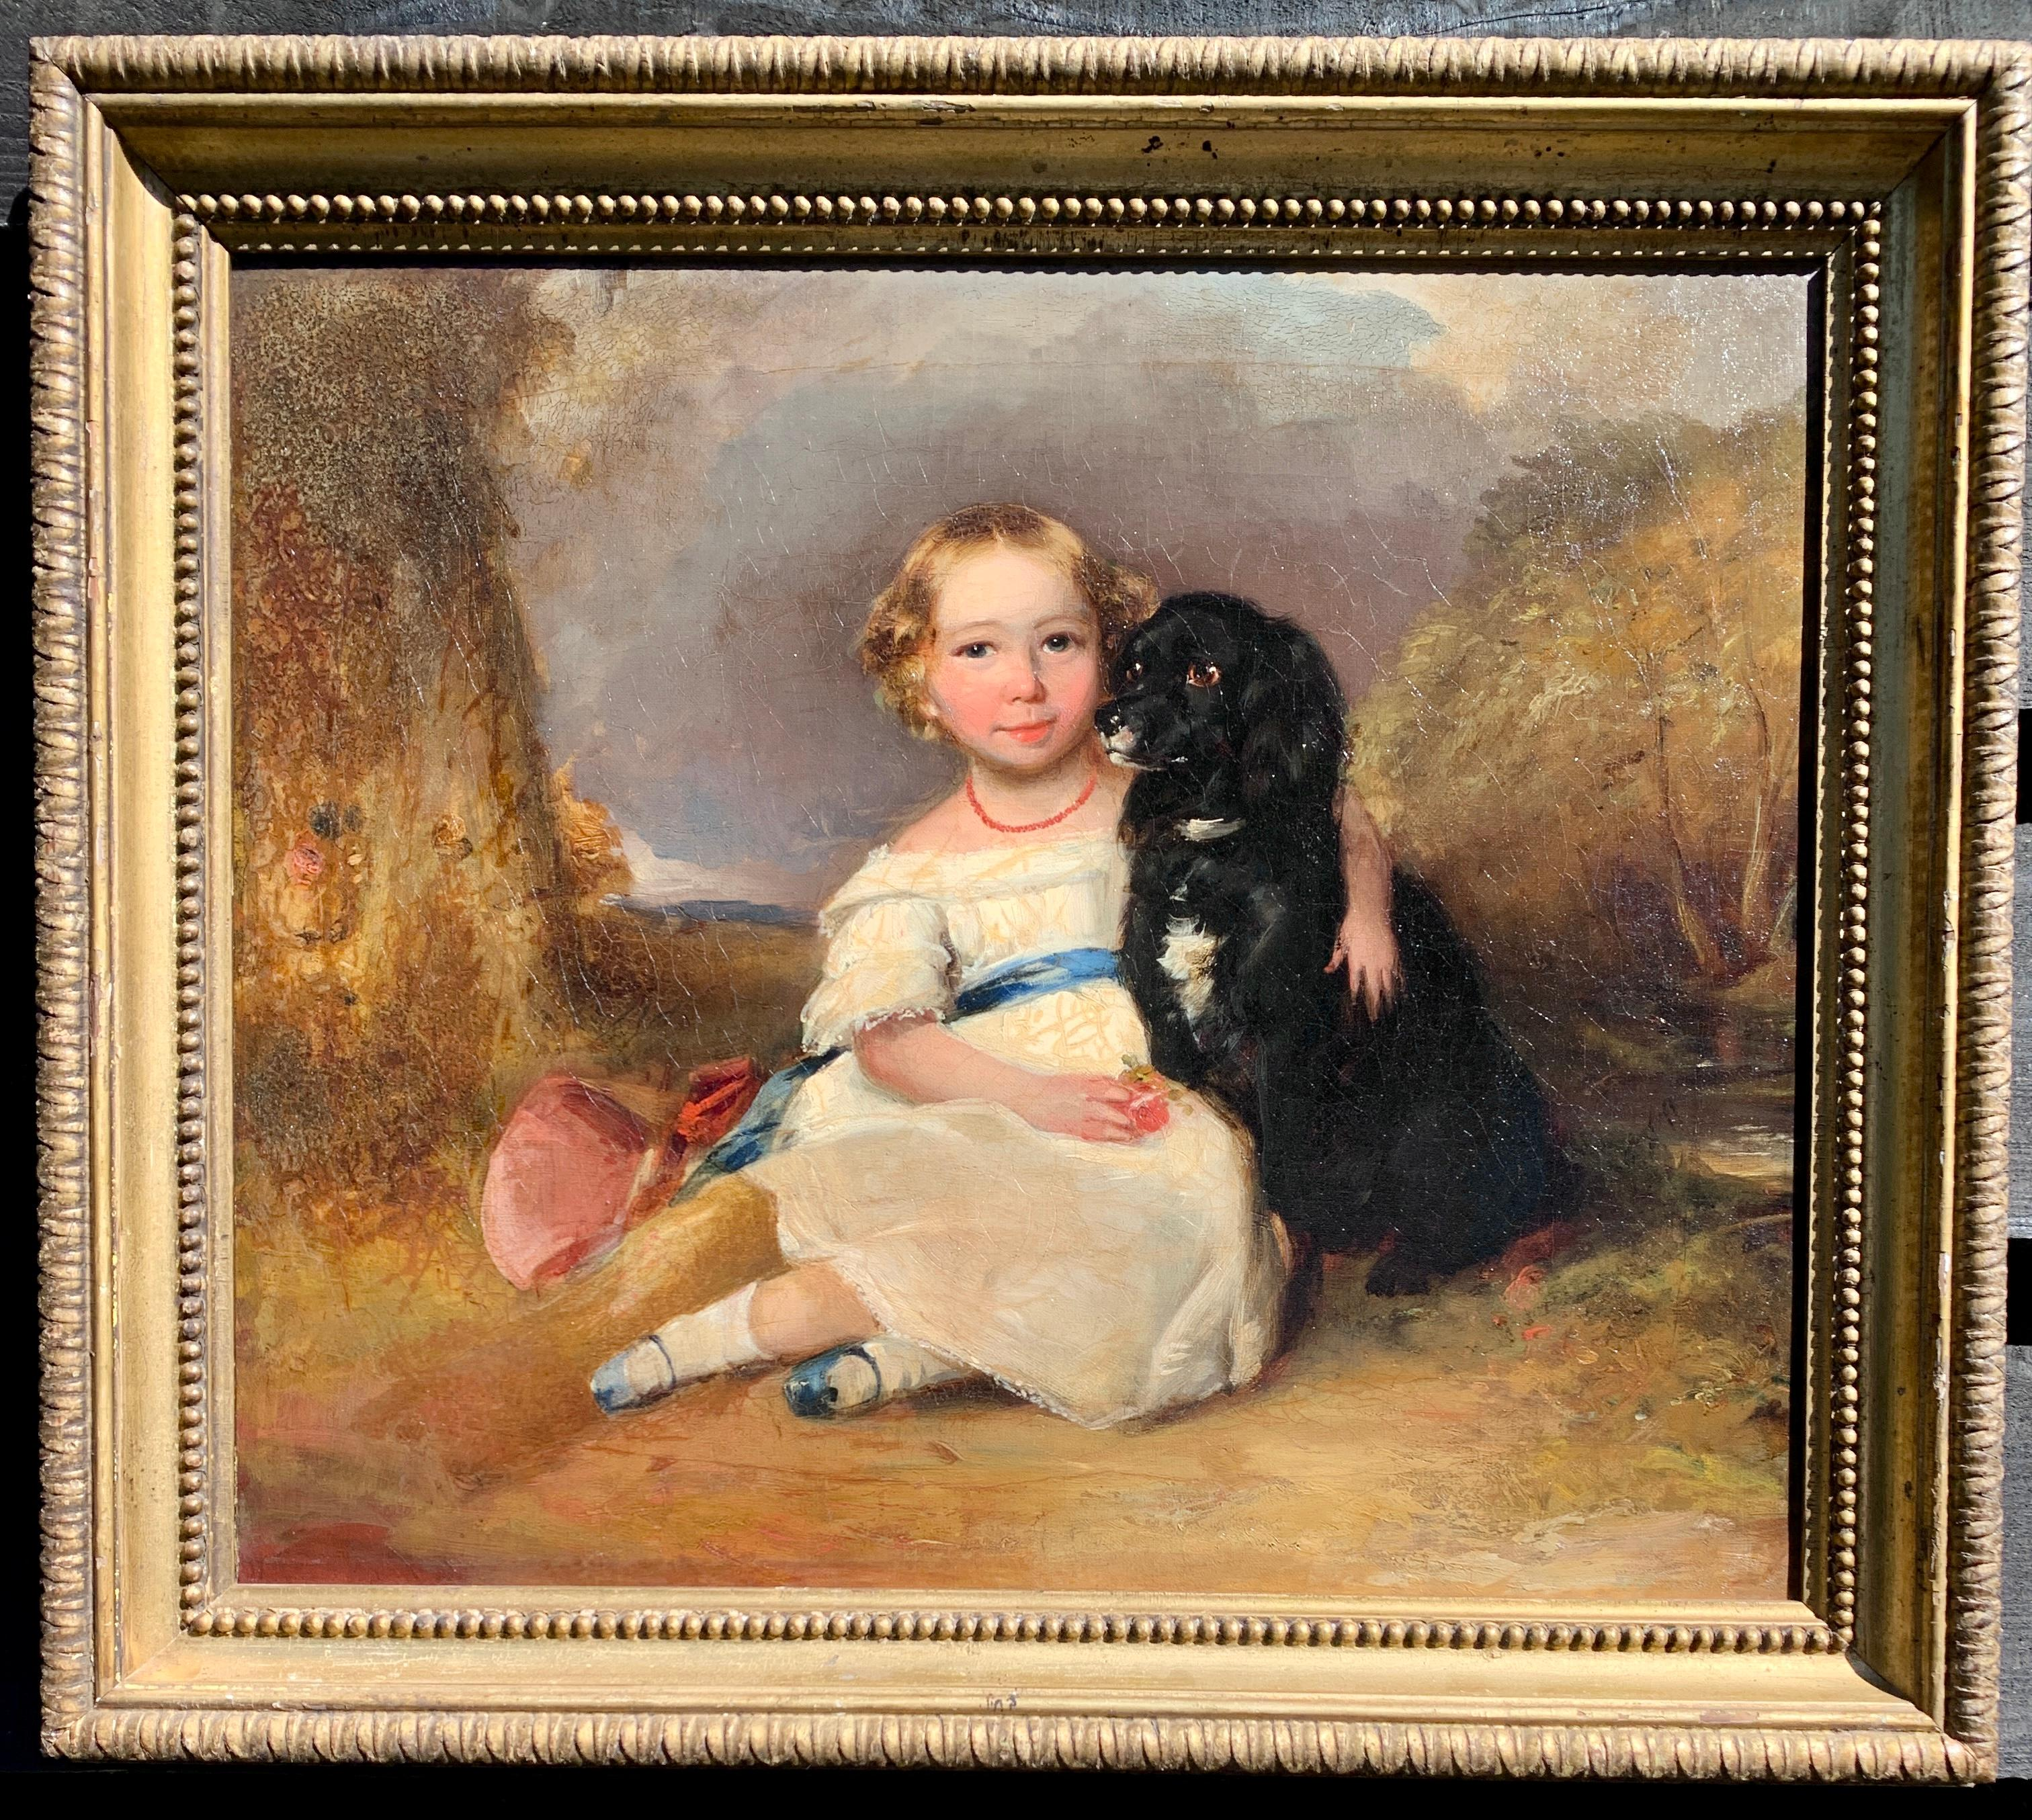 Early 19th century portrait of a young girl setting with her pet spaniel dog